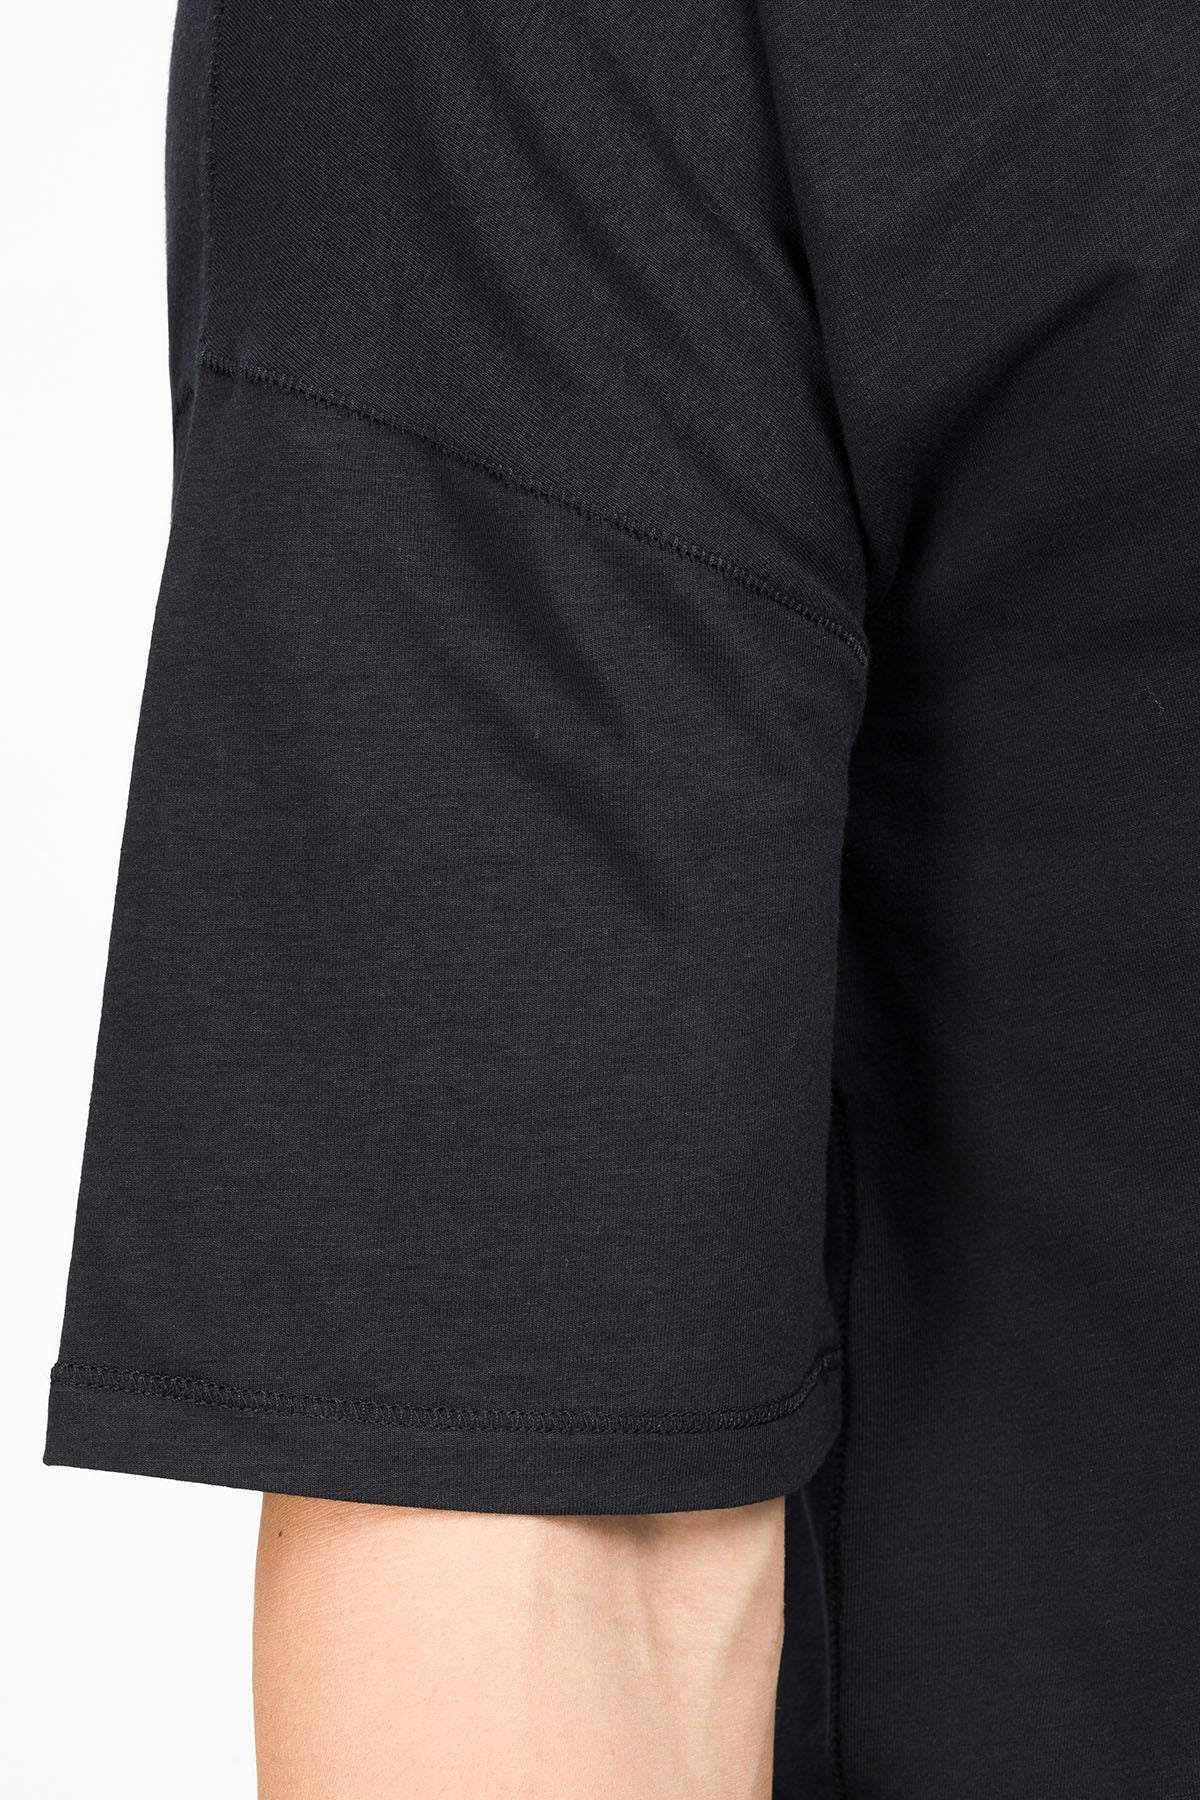 RECHARGER T-Shirt in SeaCell schwarz Passform relaxed detail Ansicht